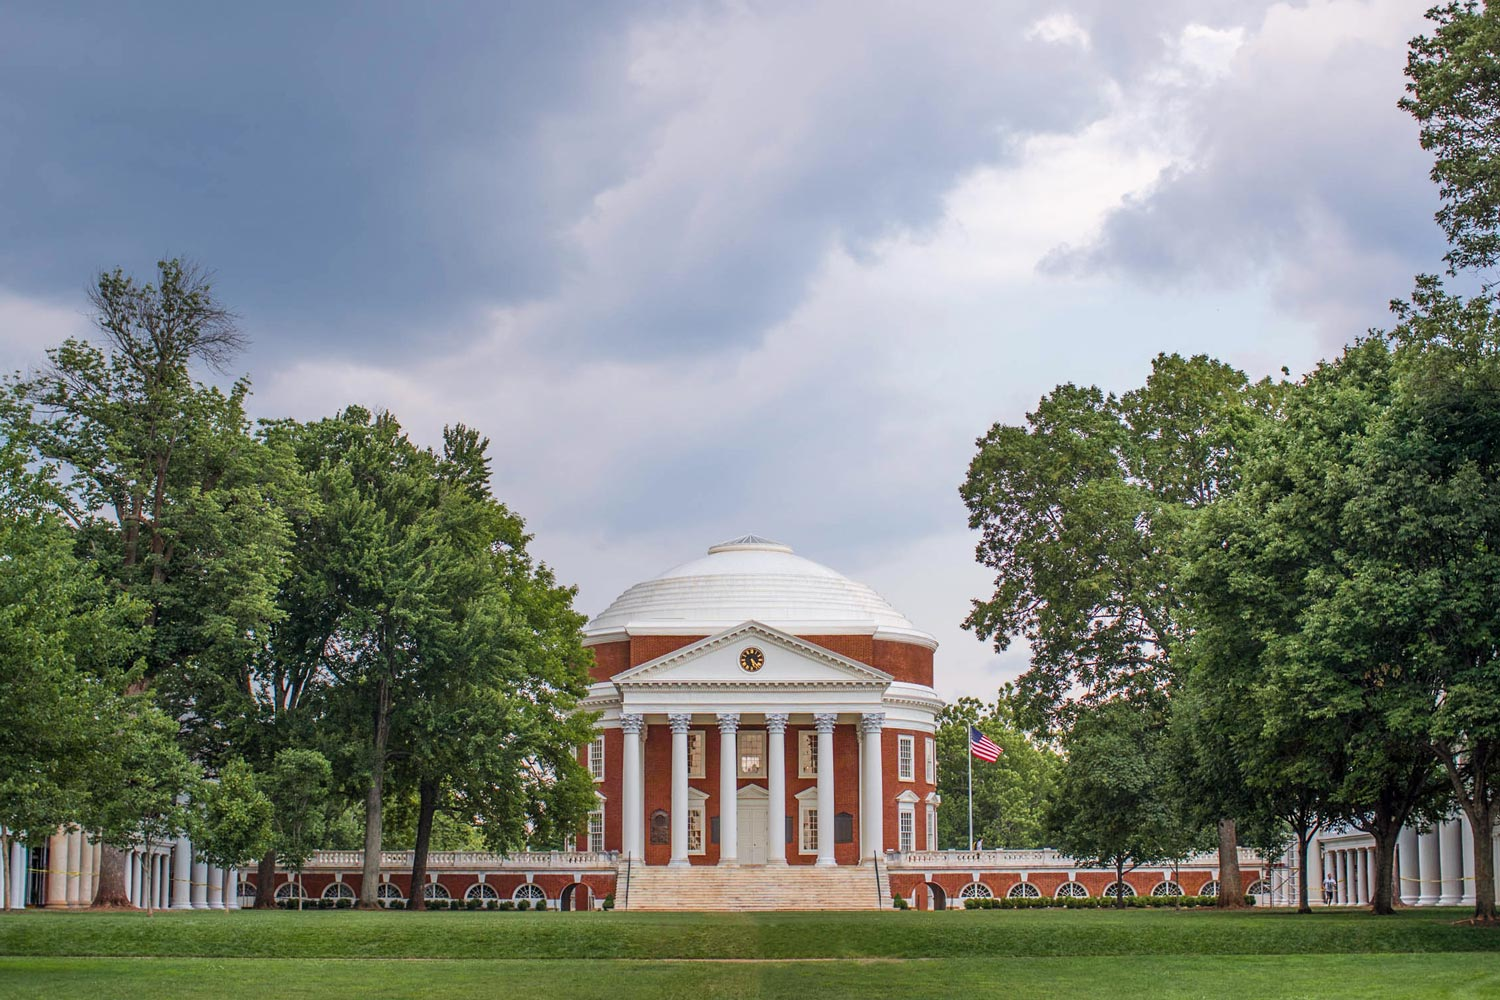 The Rotunda at the University of Virginia, on an overcast day